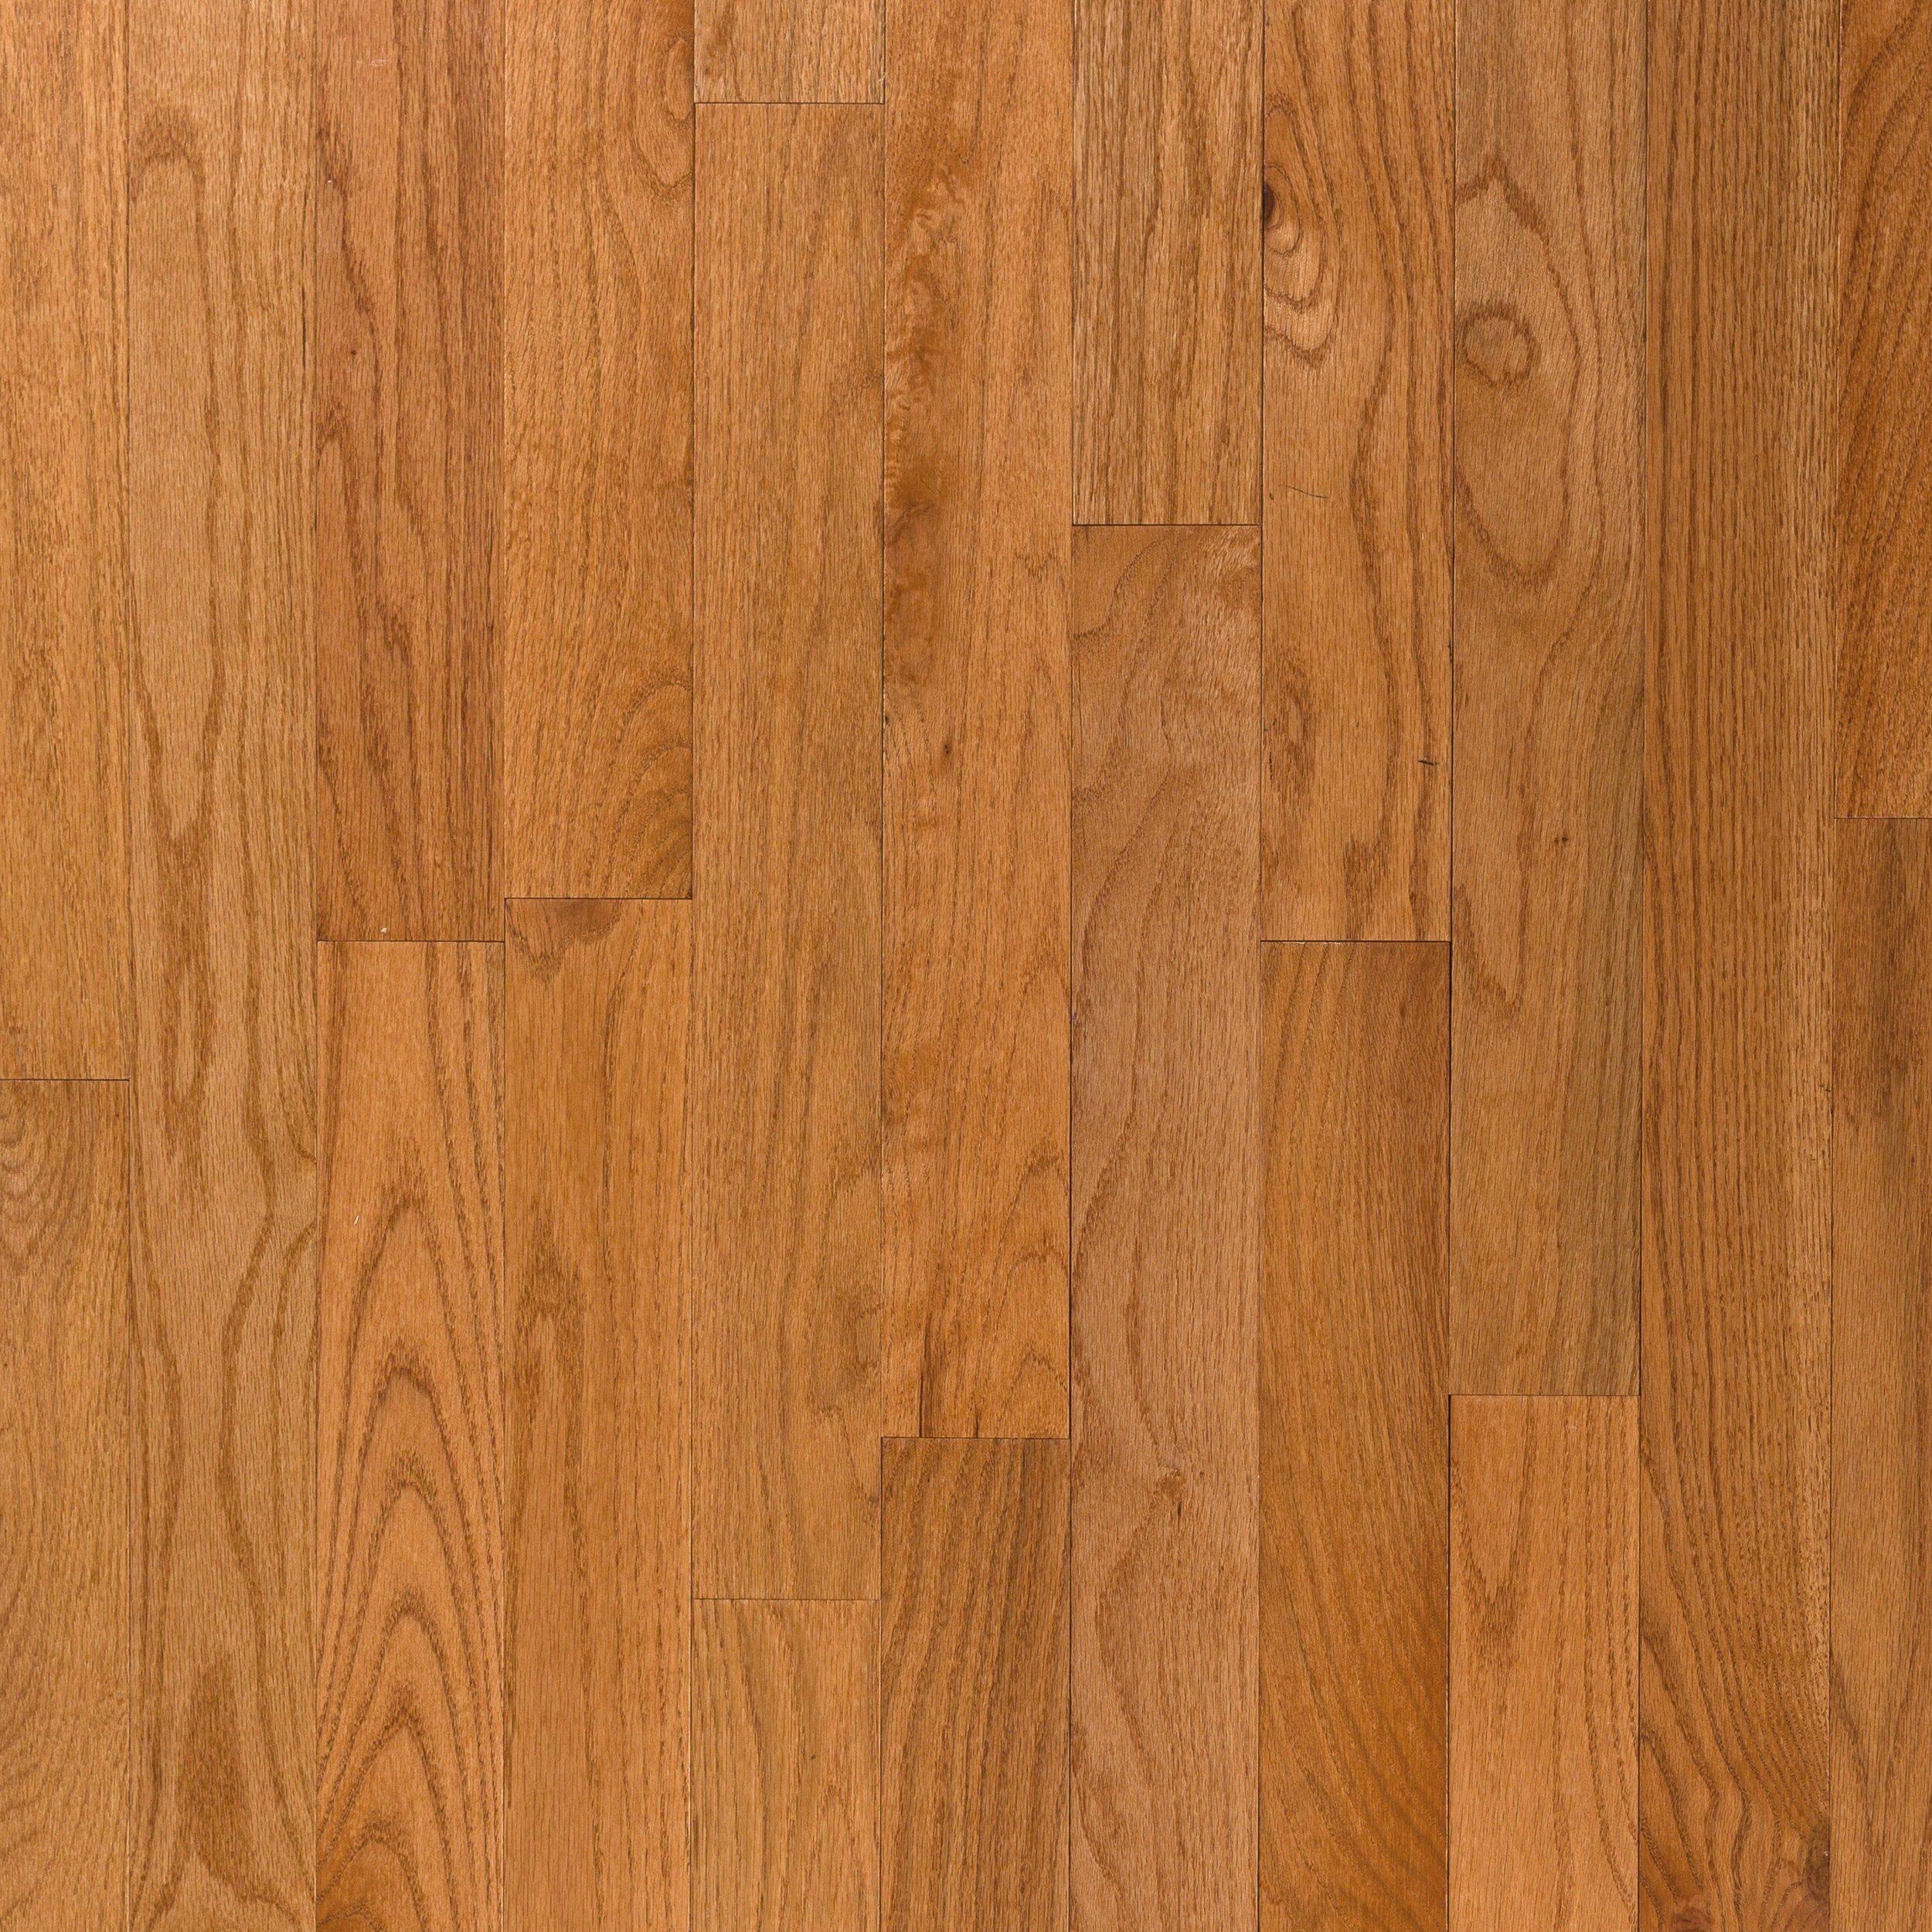 Butterscotch Select Oak High Gloss Solid Hardwood In 2020 Solid Hardwood Hardwood Maple Floors